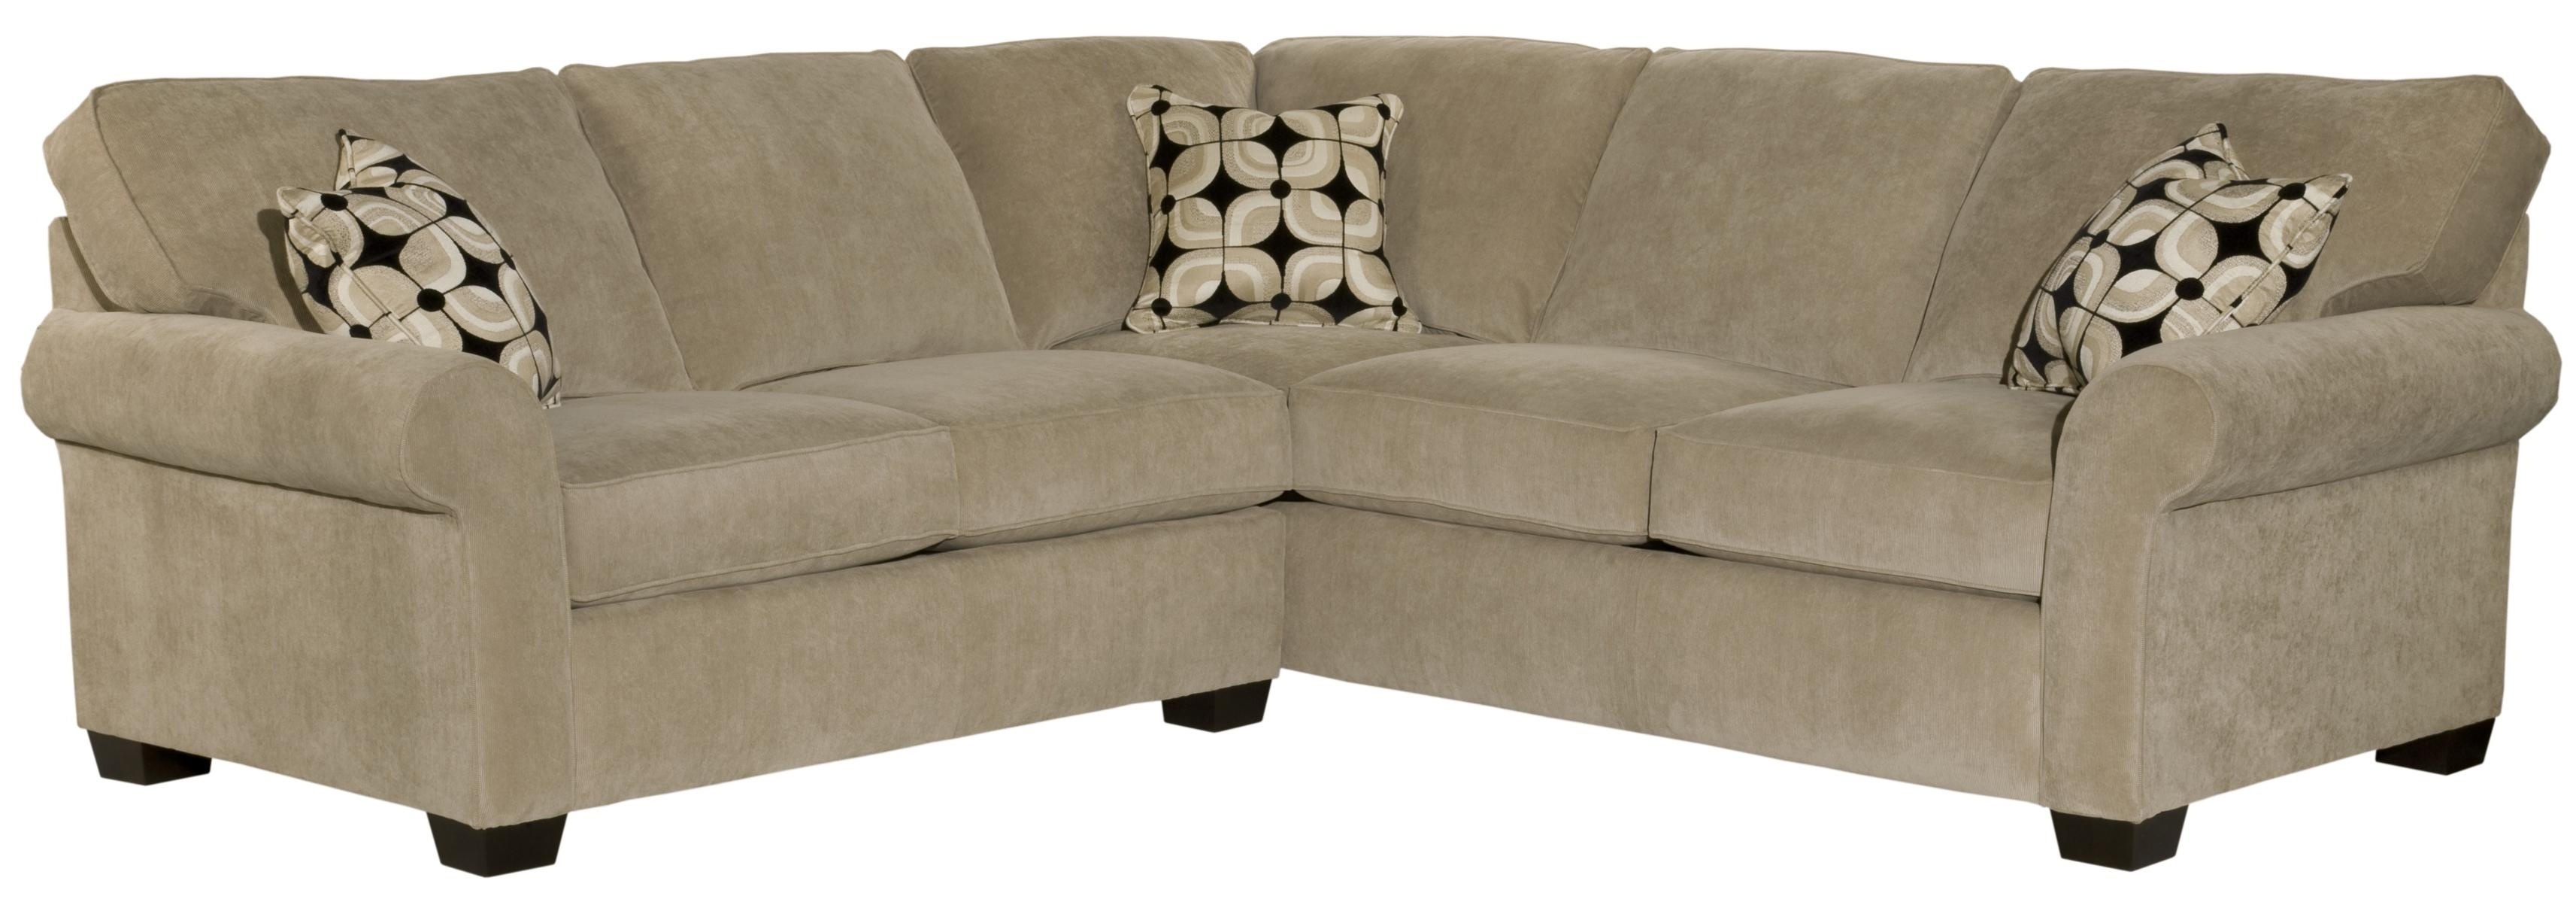 Broyhill Furniture Ethan Two Piece Sectional With Corner Sofa Regarding Broyhill Sectional Sofas (Image 2 of 15)